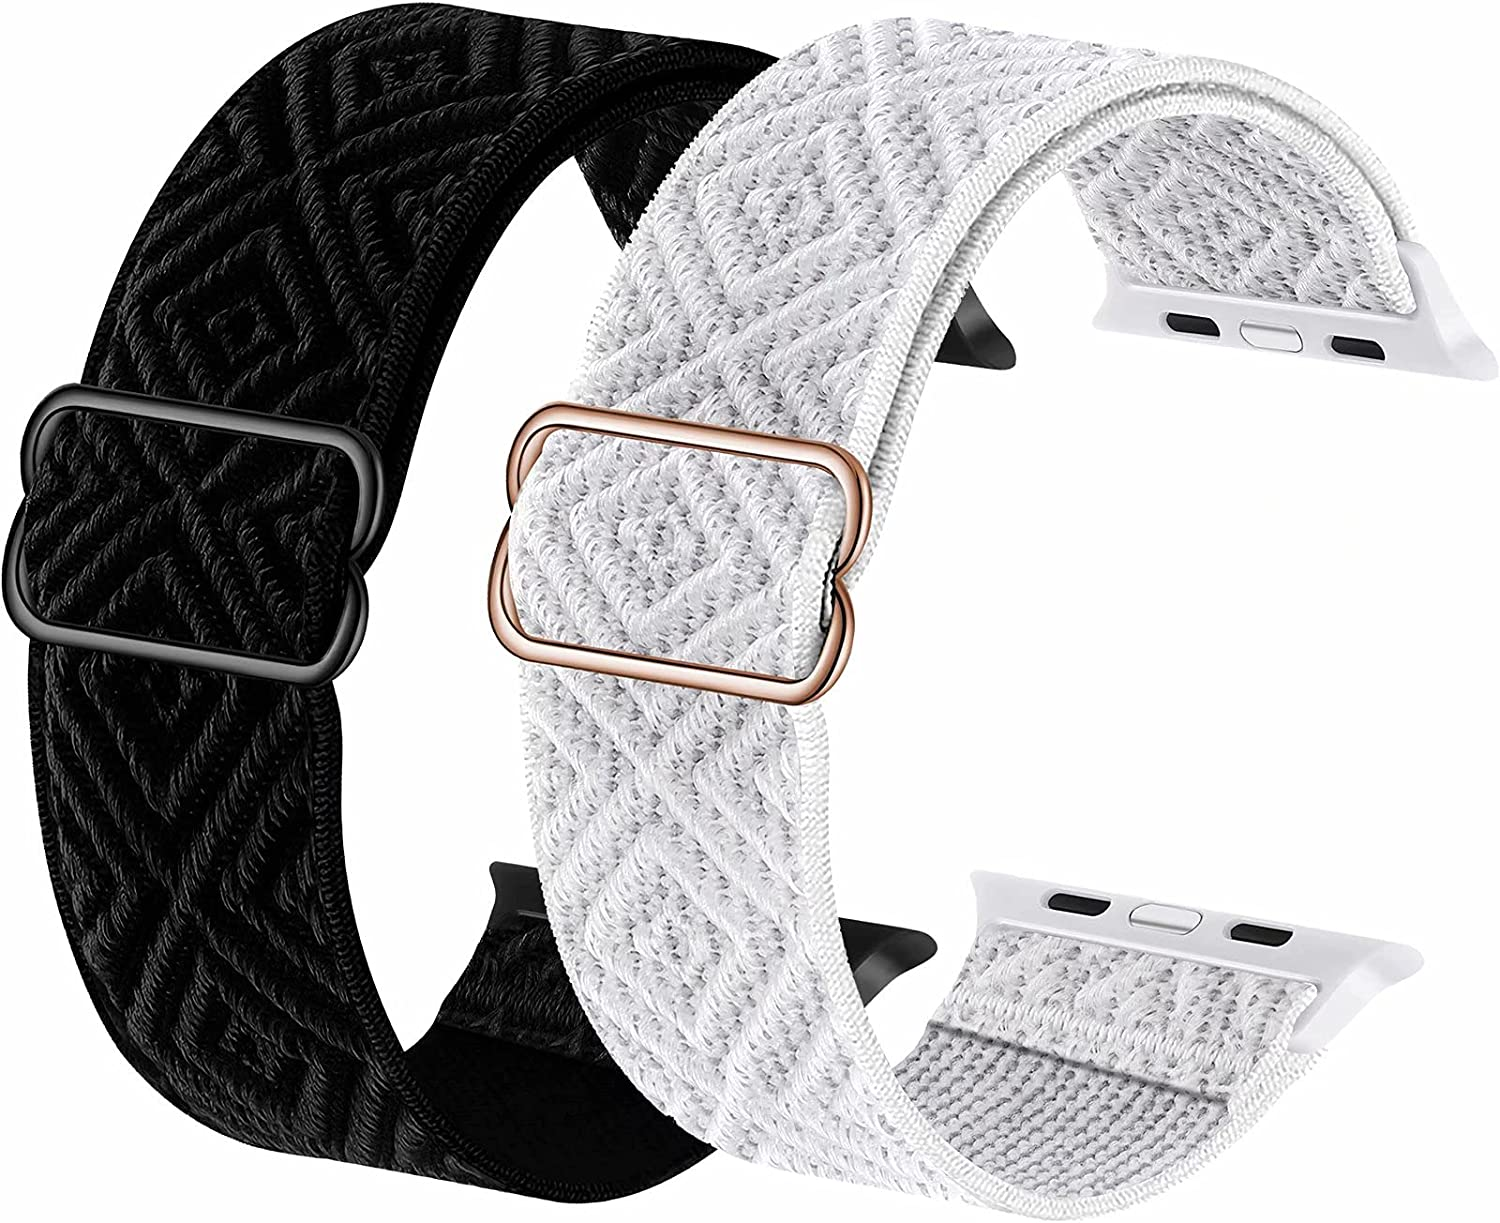 2-Pack ADWLOF Stretchy Solo Loop Strap Compatible with Apple Watch Bands 42mm 44mm,Diamond Sport Elastics Nylon Adjustable Stretch Braided for iWatch Series 6/5/4/3/2/1 SE Women Men,Black&White